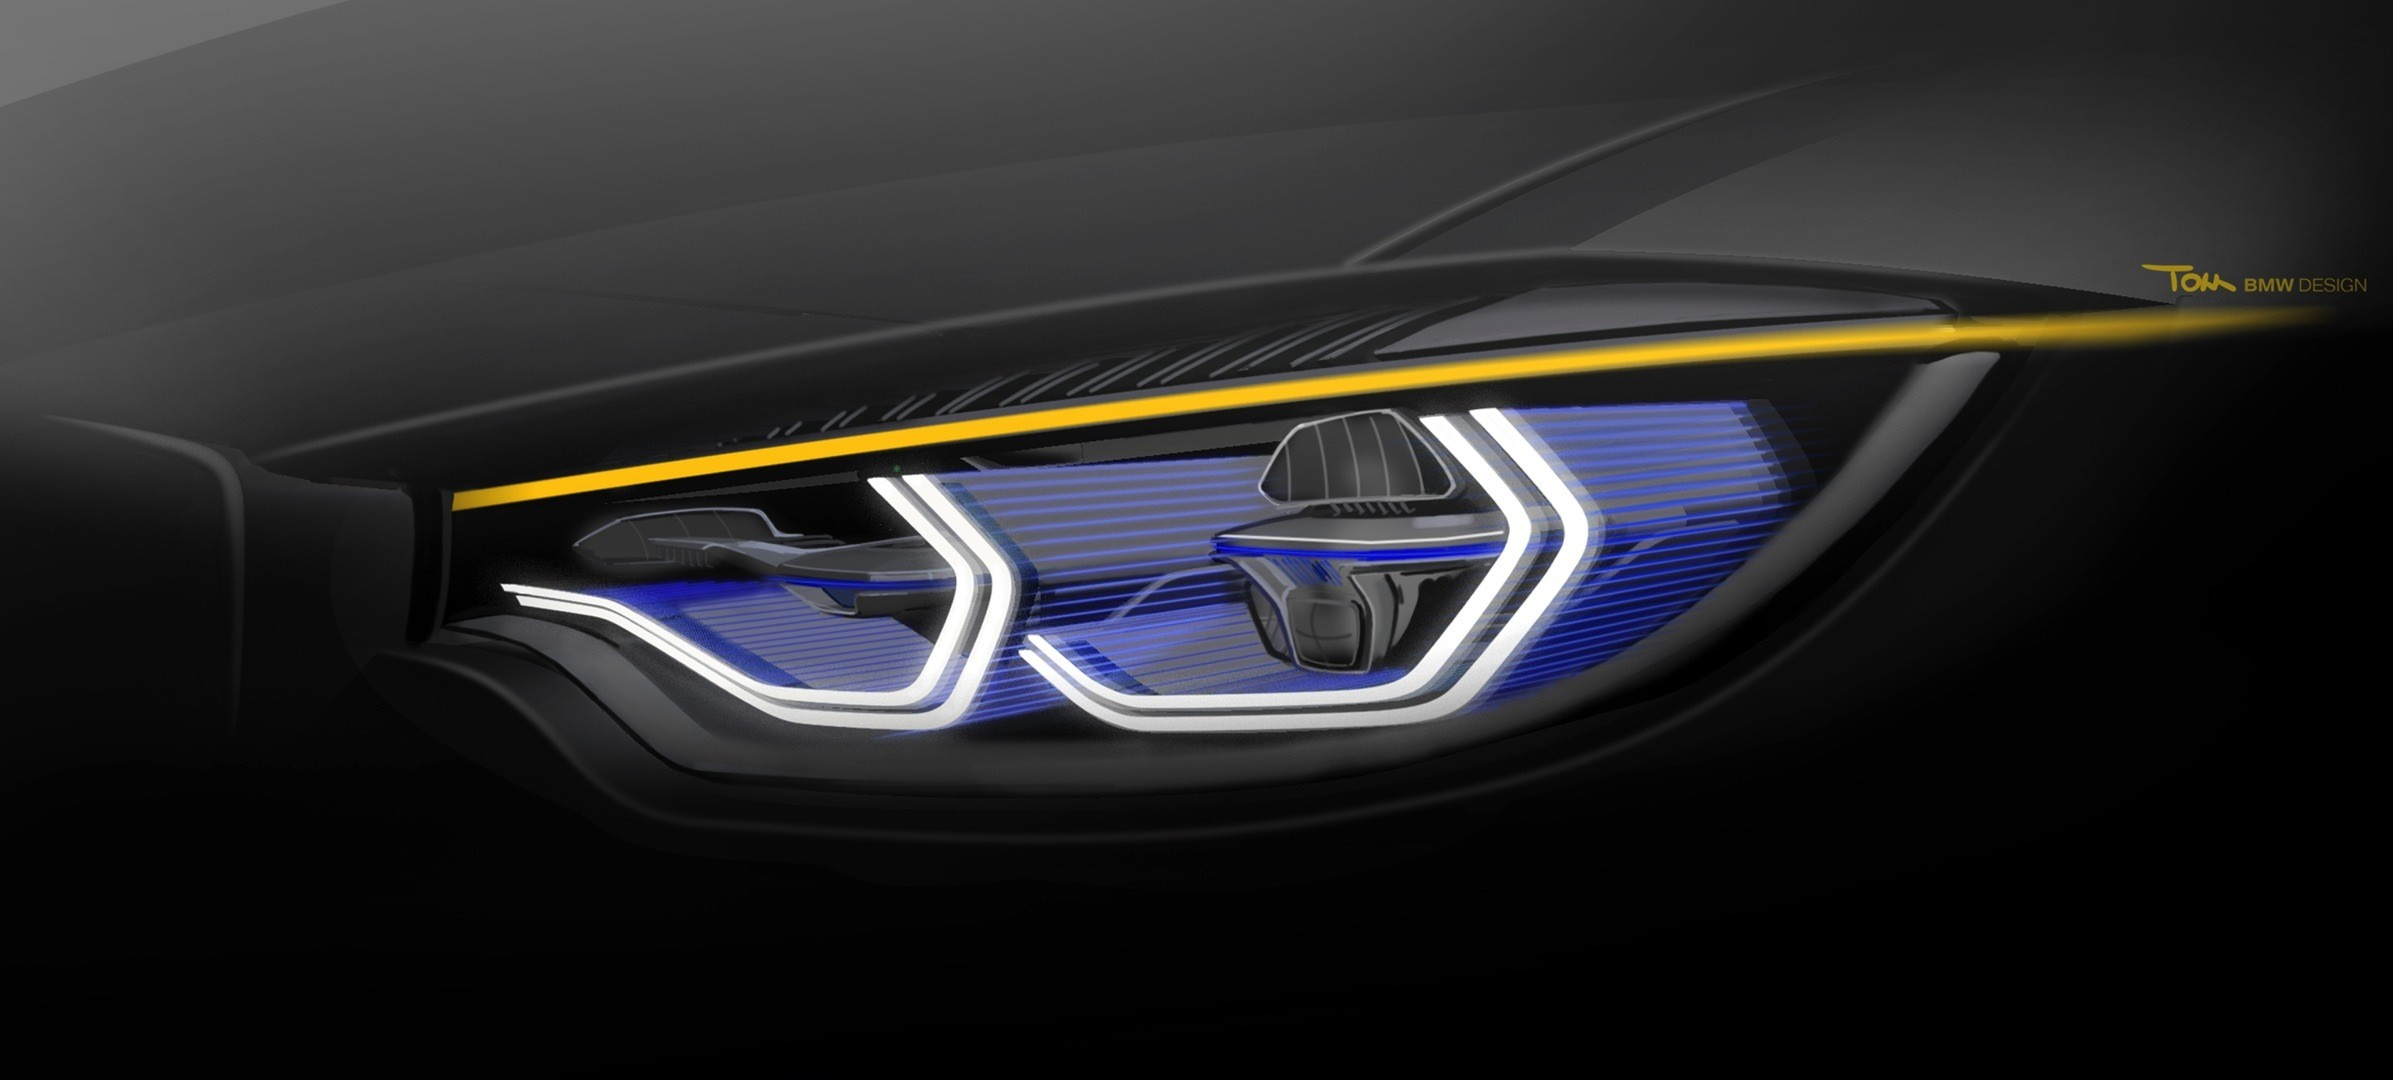 Bmw M4 Concept Iconic Lights Brings Intelligent Laser